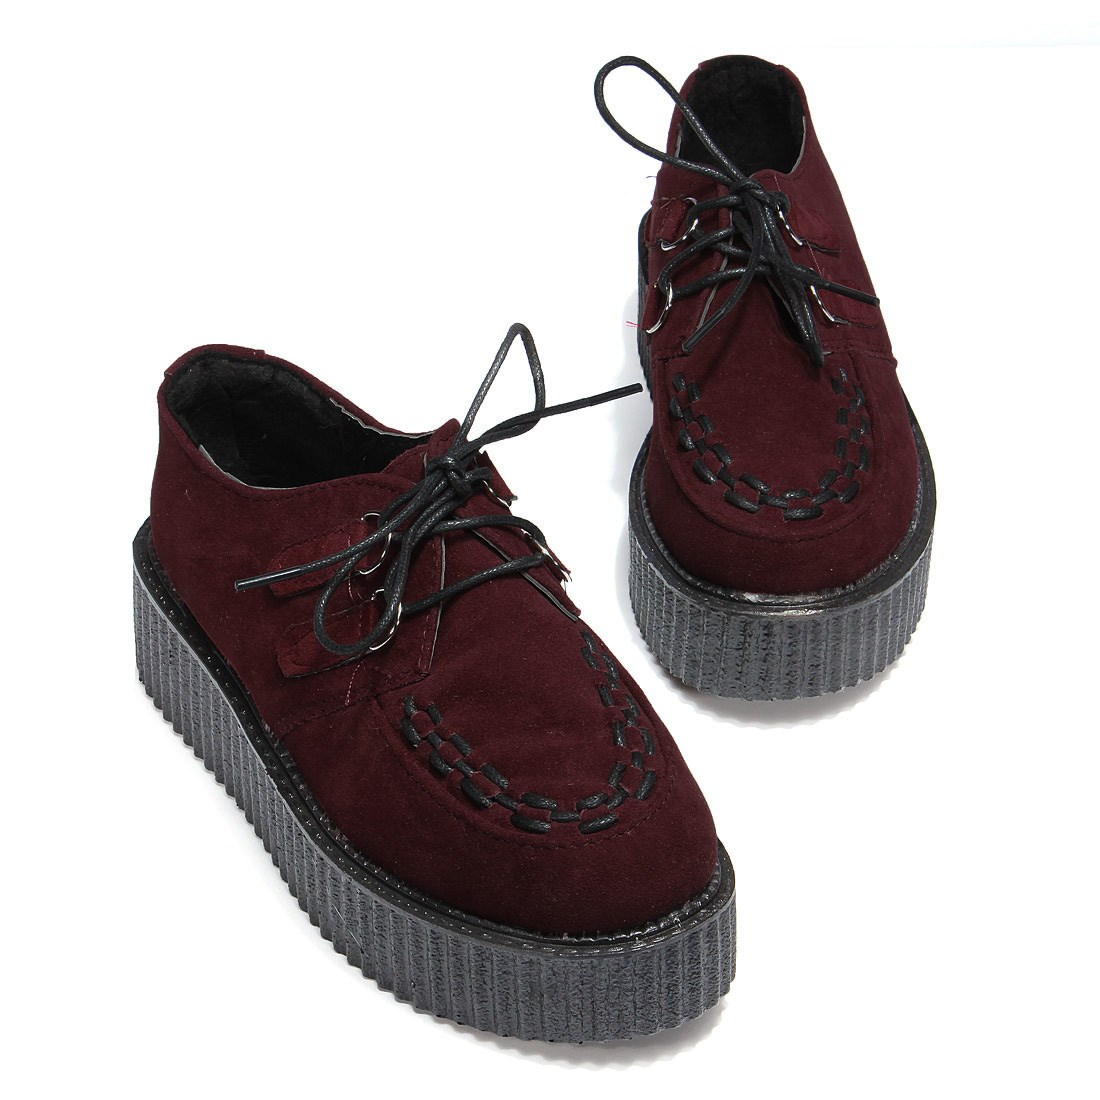 6fb45d3a6 Autumn Creepers Platform Shoes Woman Flats Female Womens Girl Footwear  Women Black Wine Red Thick Flat Heel Slip Soft Shoe-in Women's Flats from  Shoes on ...